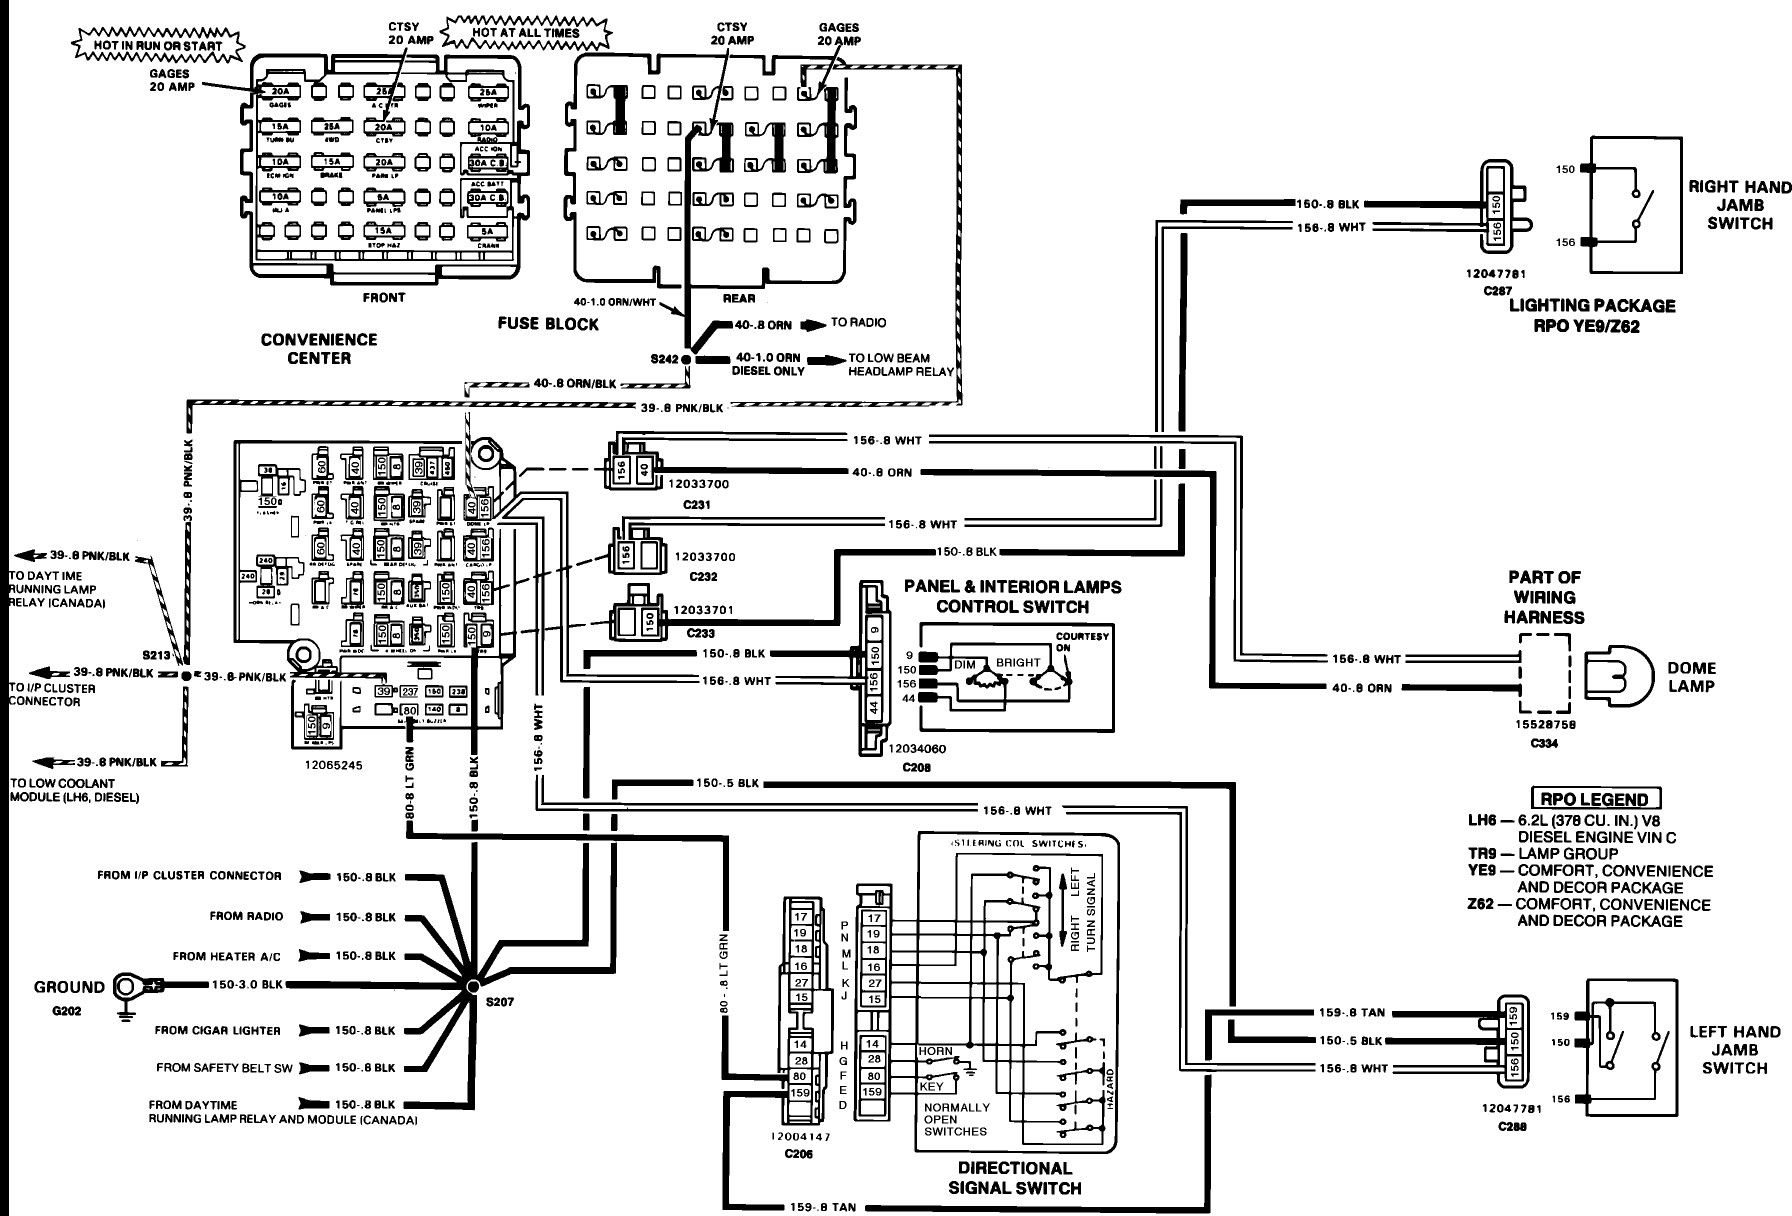 wiring diagram for 1993 chevy silverado wiring diagram expert 1993 chevy silverado wiring diagram wiring diagram [ 1792 x 1216 Pixel ]